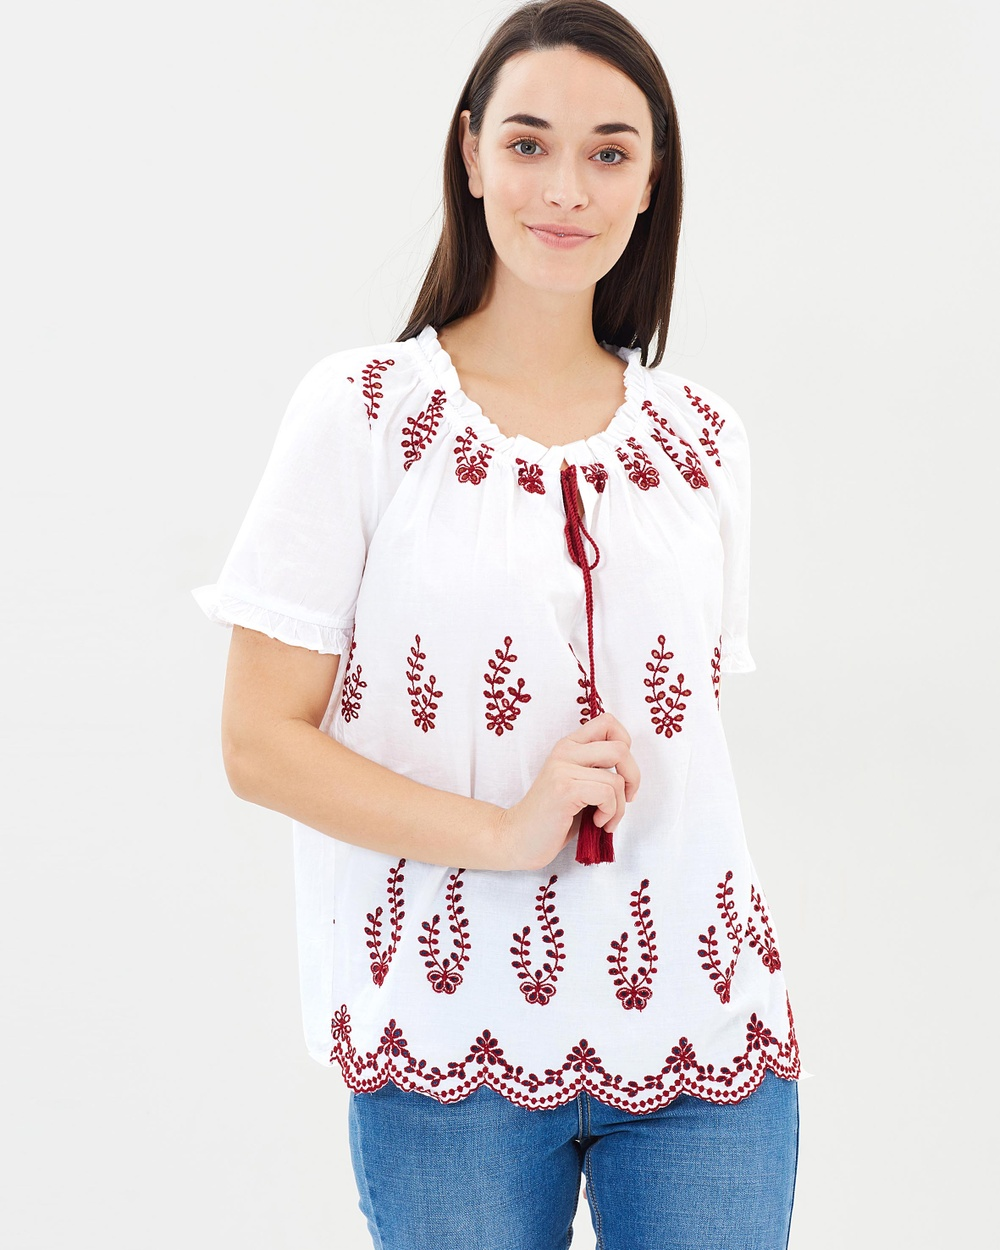 Dorothy Perkins Embroidered Frill Gypsy Top Tops White Embroidered Frill Gypsy Top